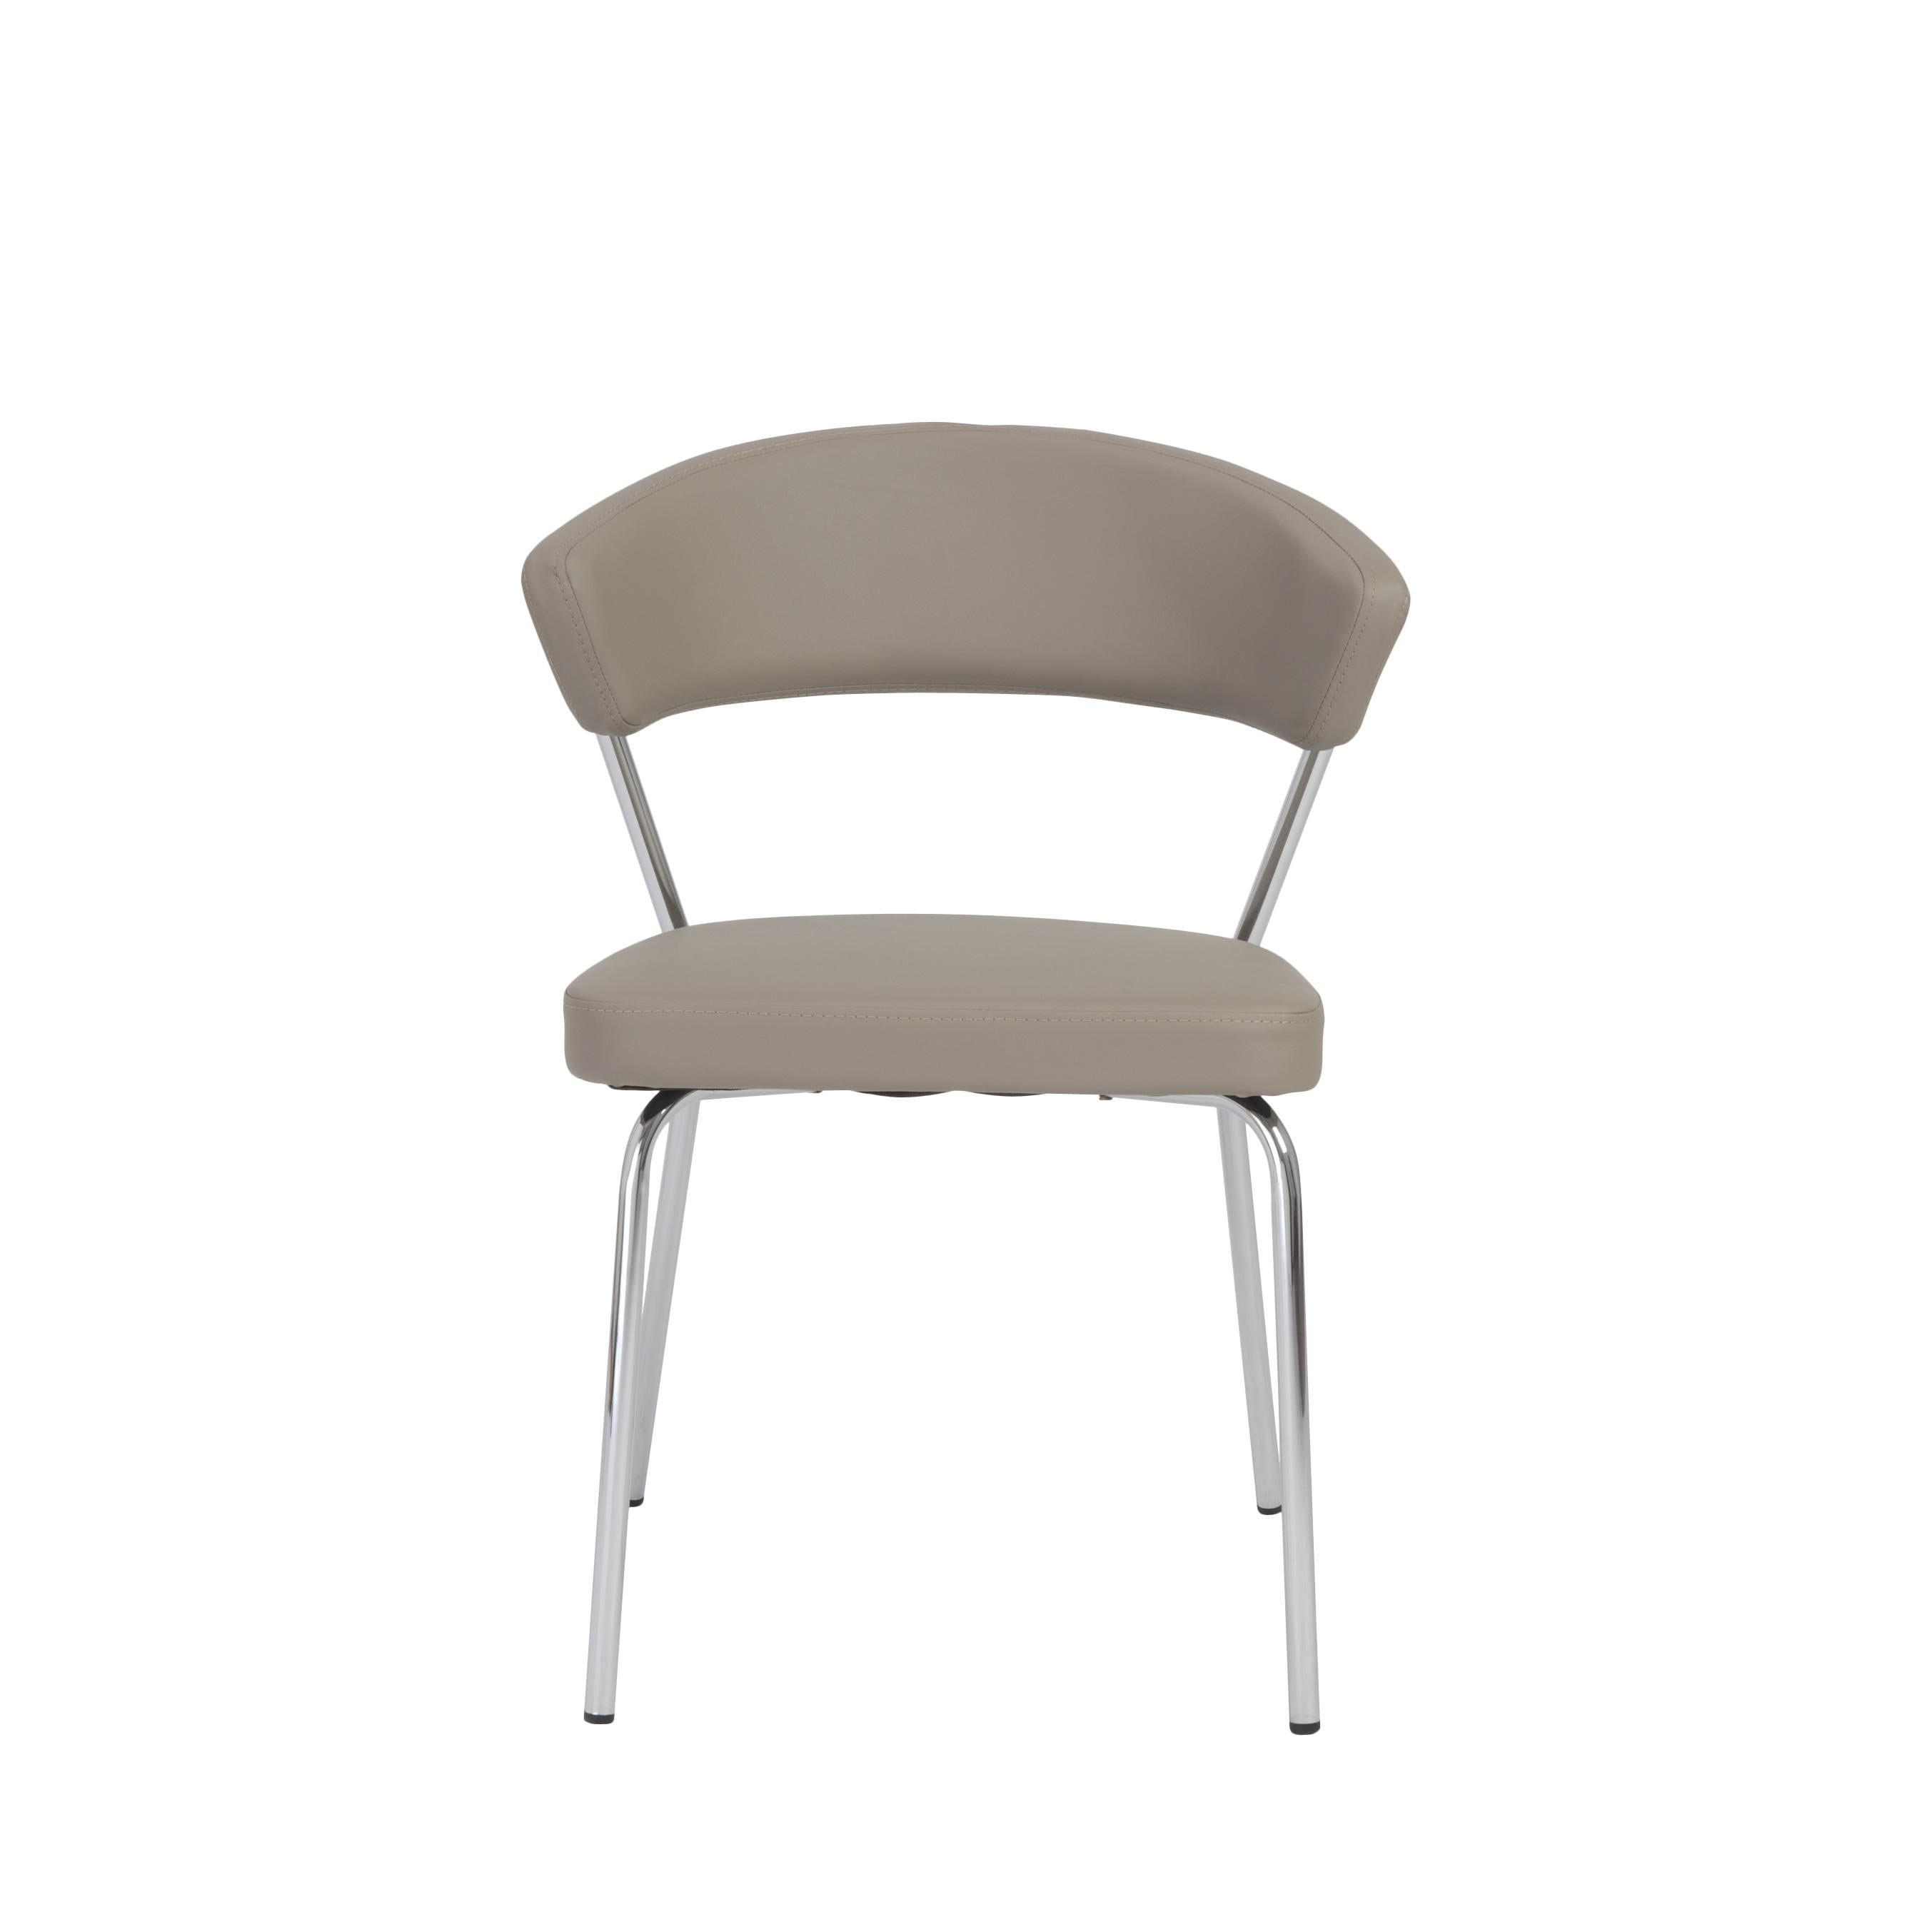 Curved-Back Taupe Leatherette Guest or Conference Chair (Set of 4)